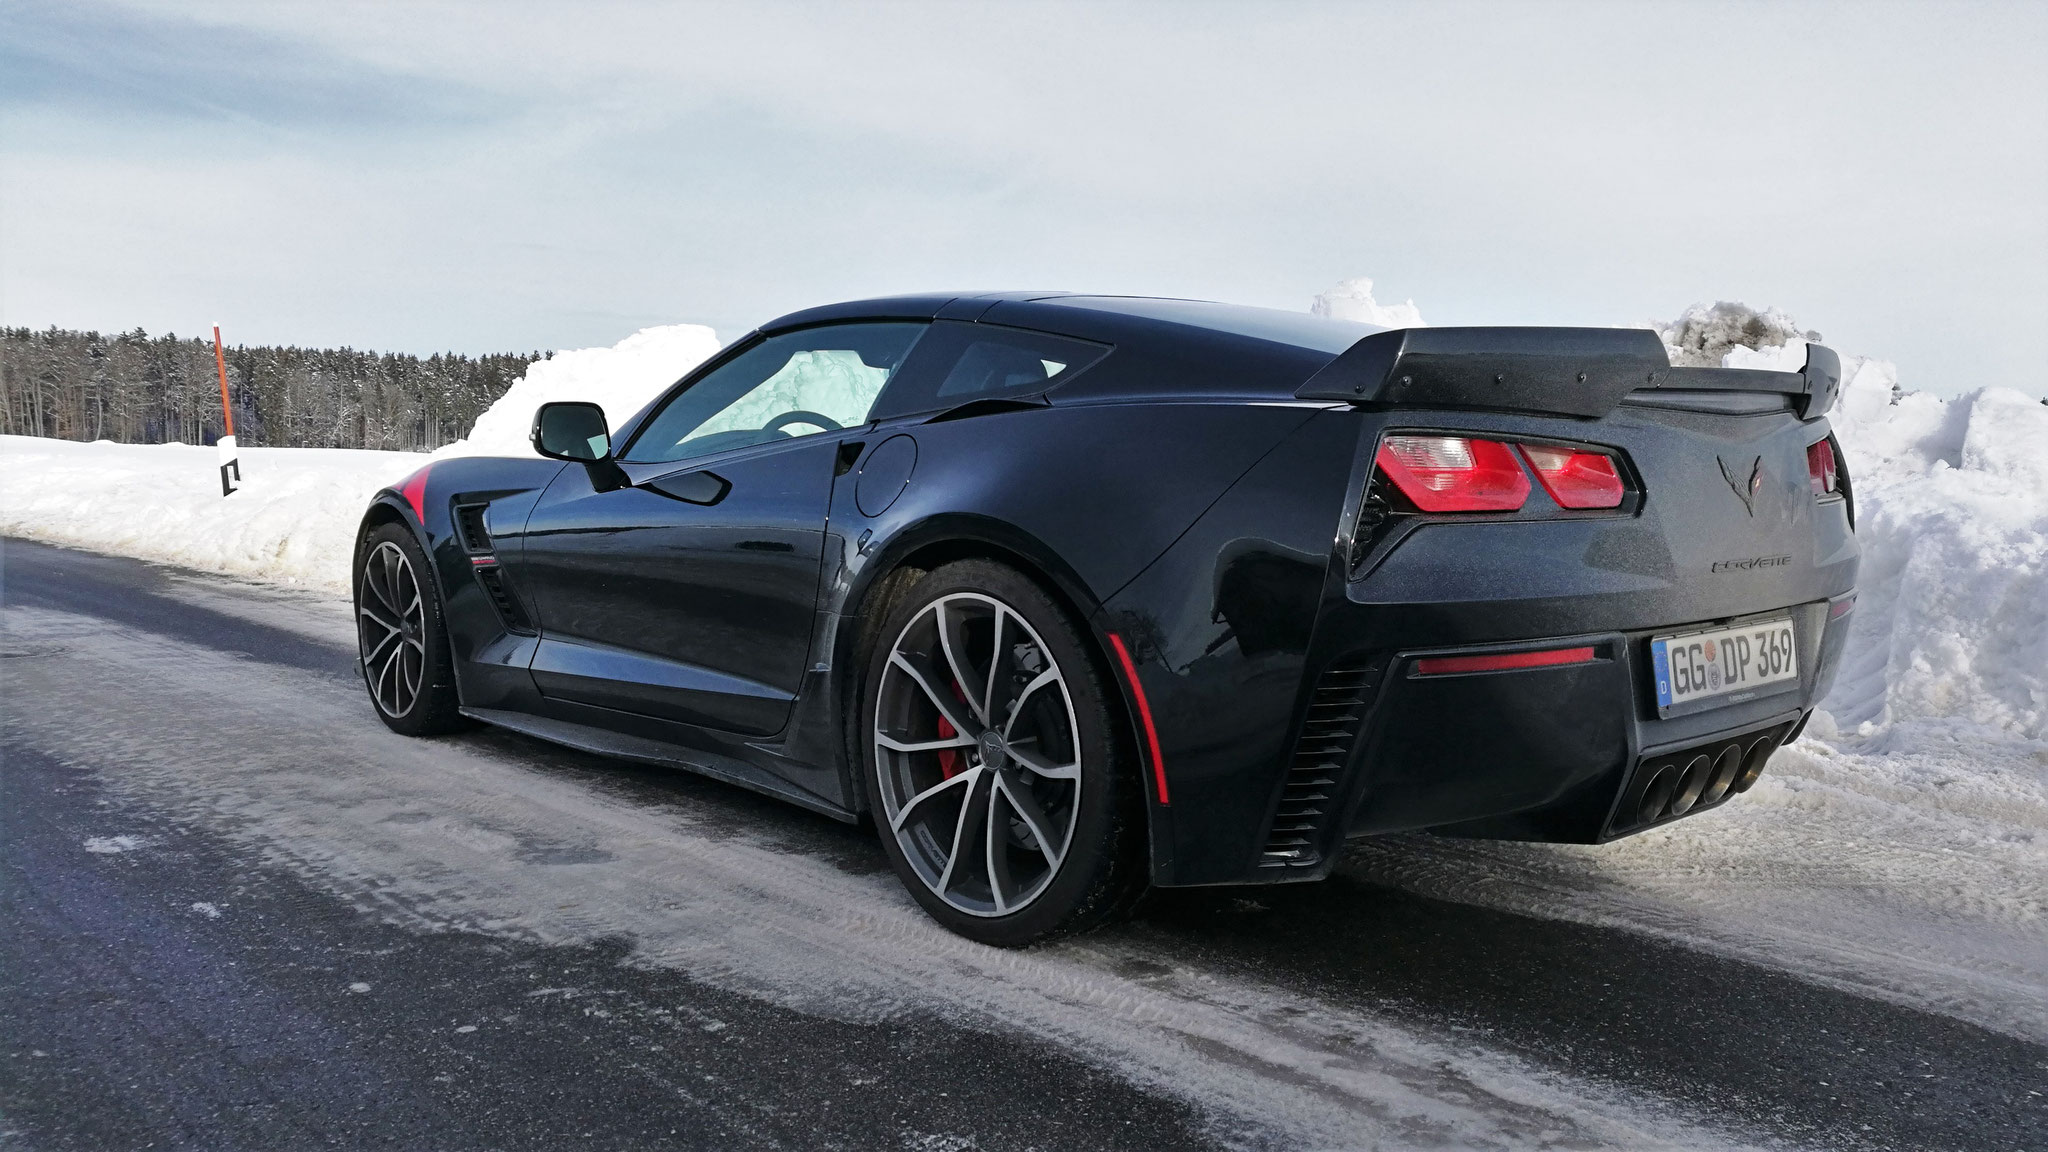 Chevrolet Corvette C7 Grand Sport - GG-DP-369